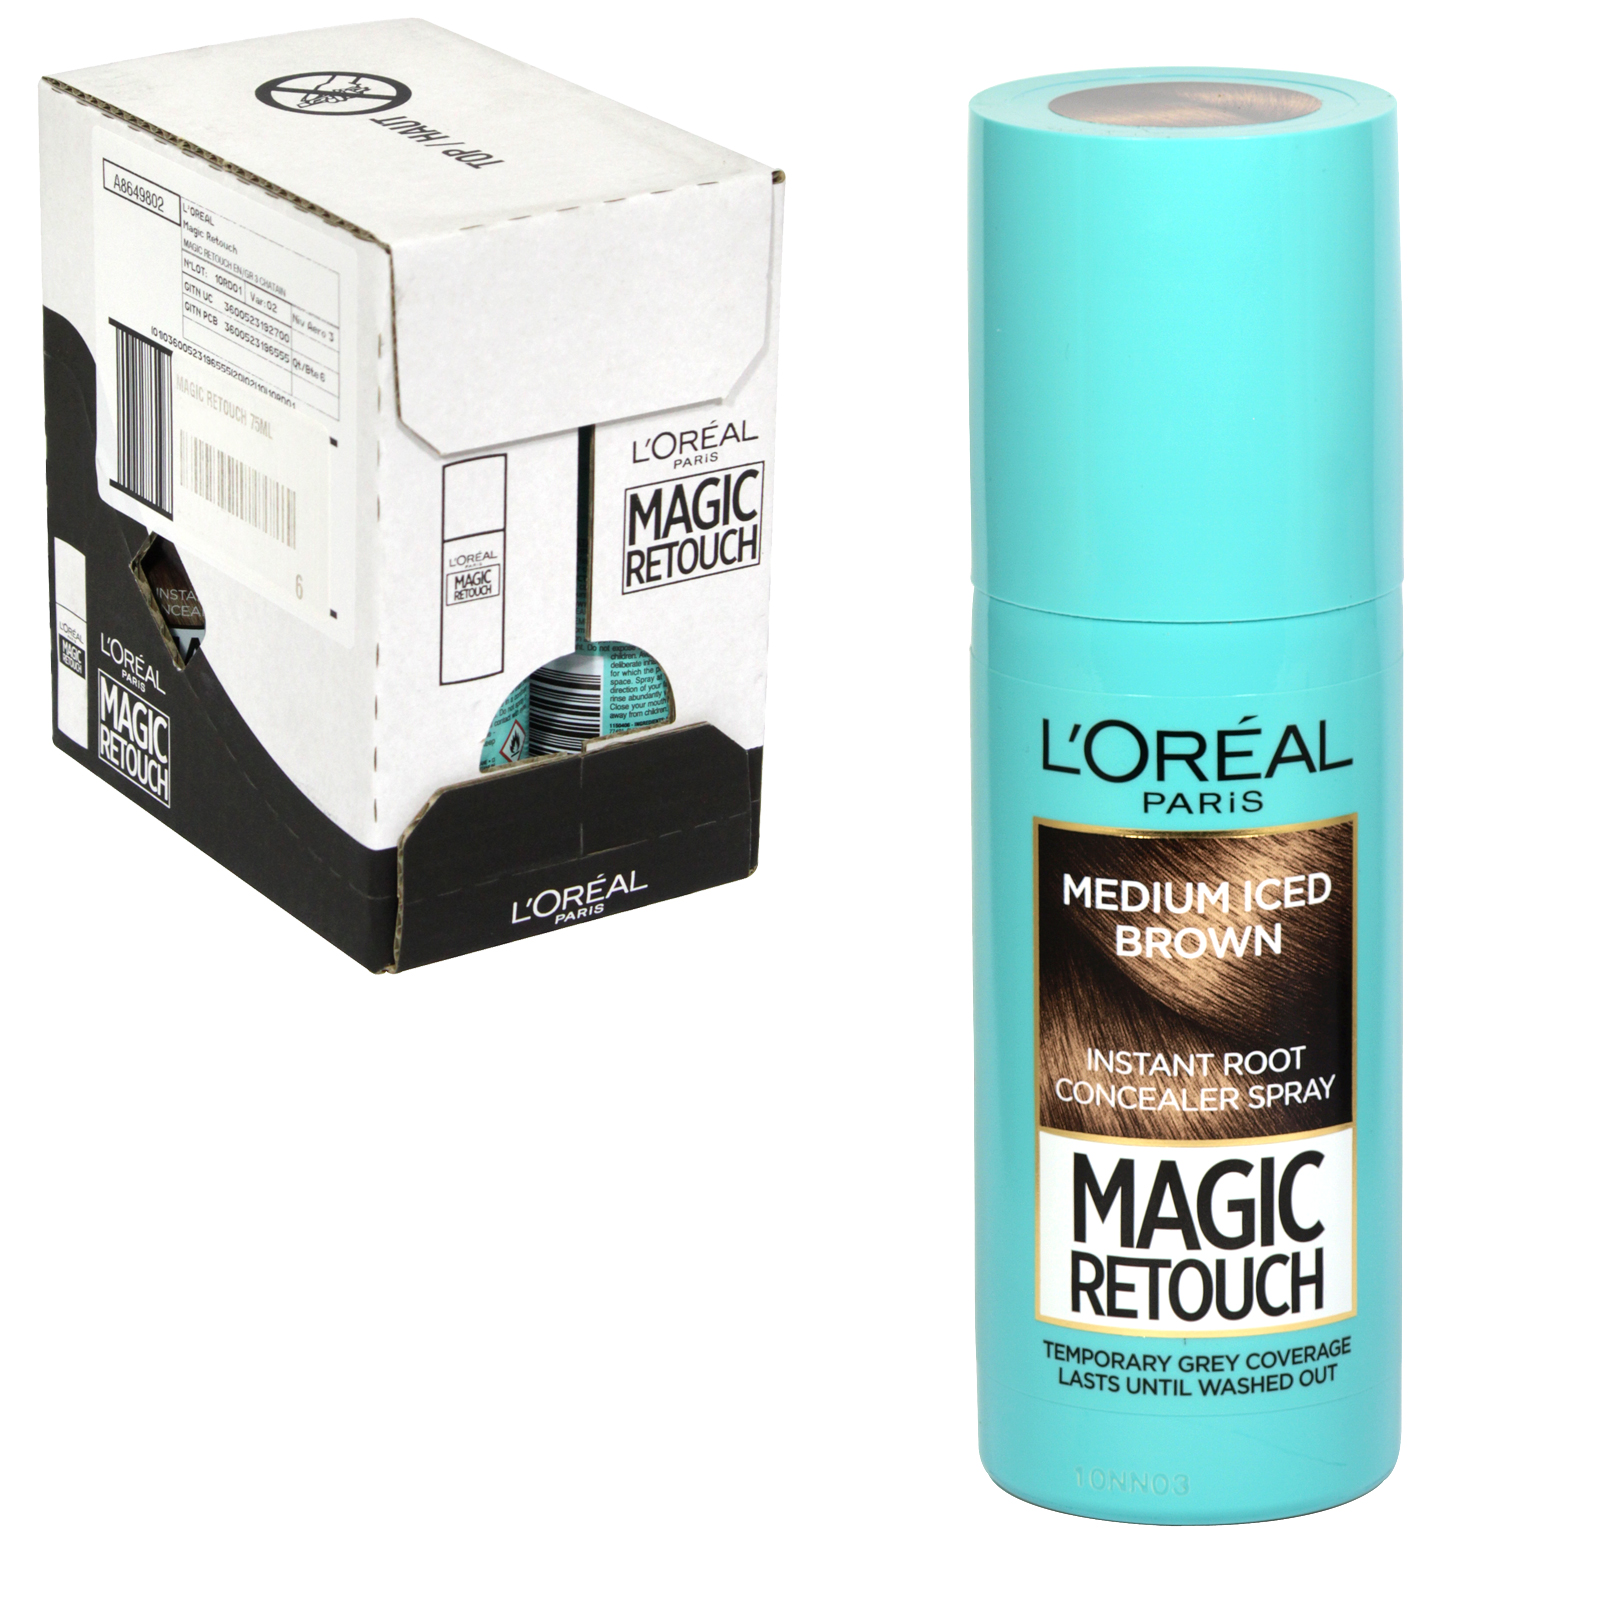 MAGIC RETOUCH 75ML SPRAY 8 MEDIUM ICED BROWN X6